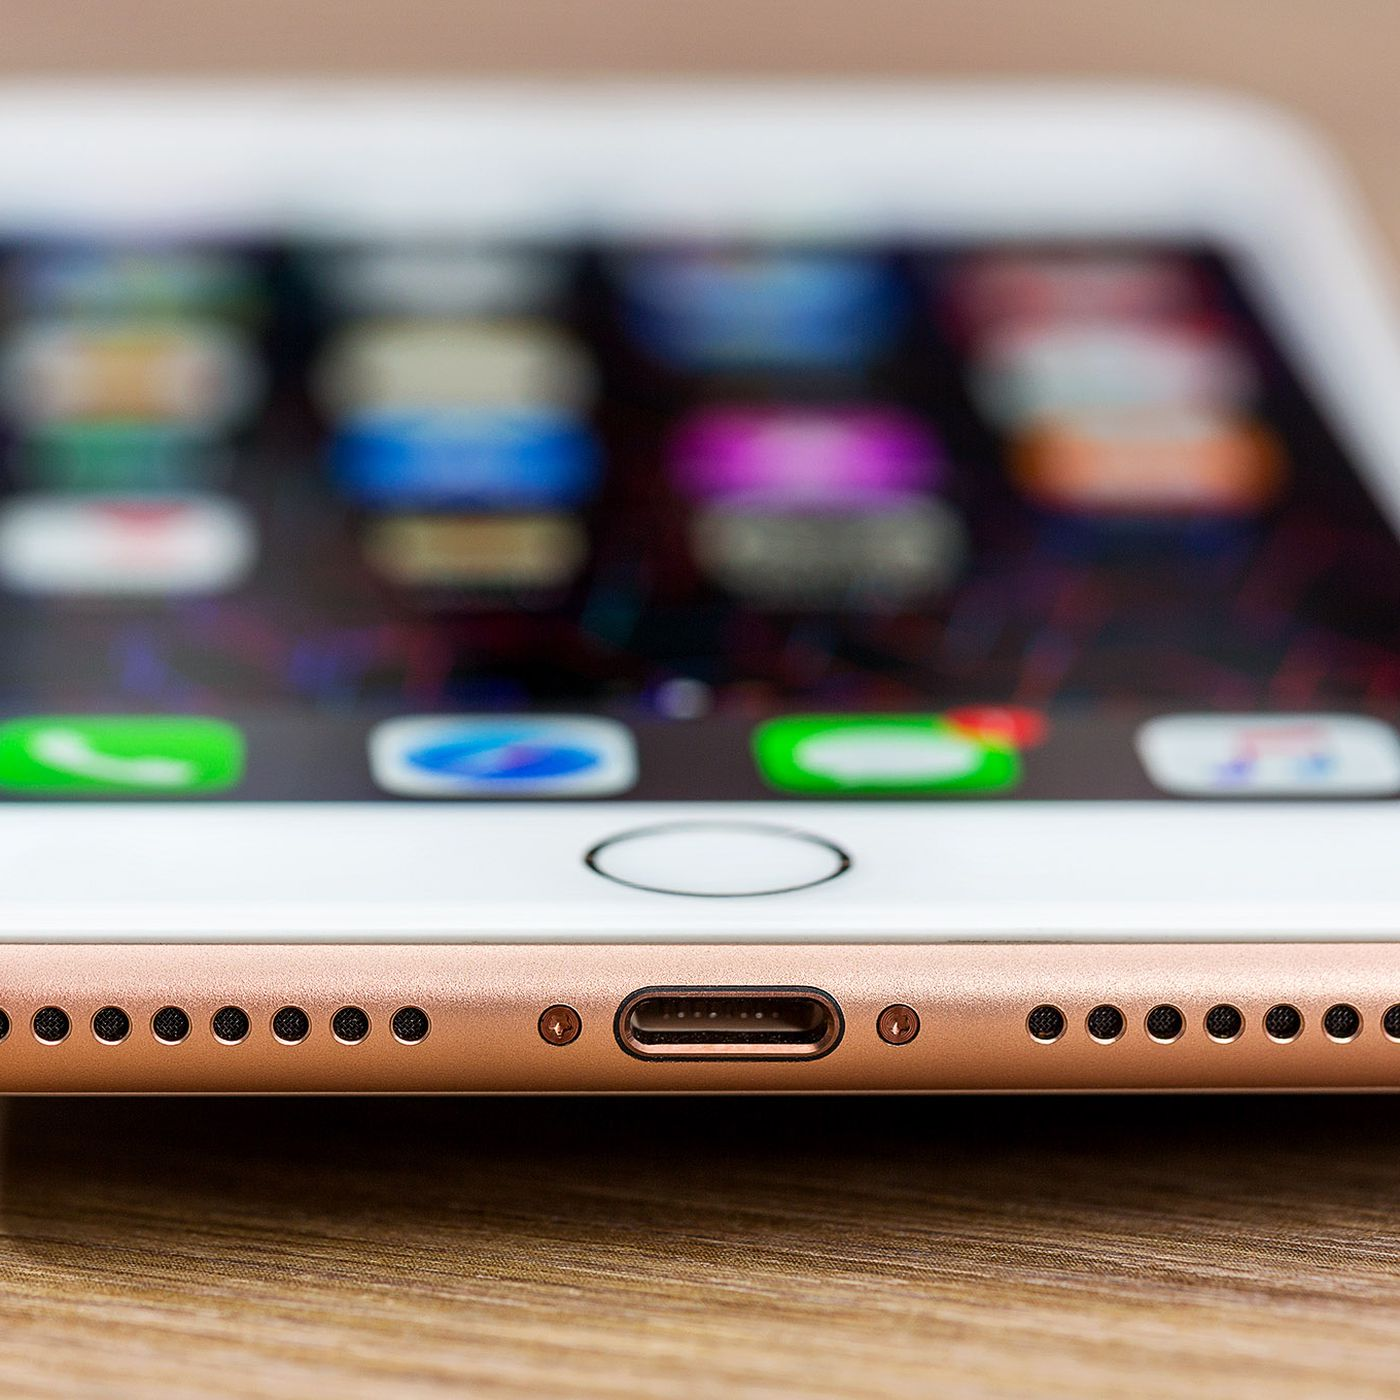 Apple's iOS passcode cracking defense can be bypassed using a USB